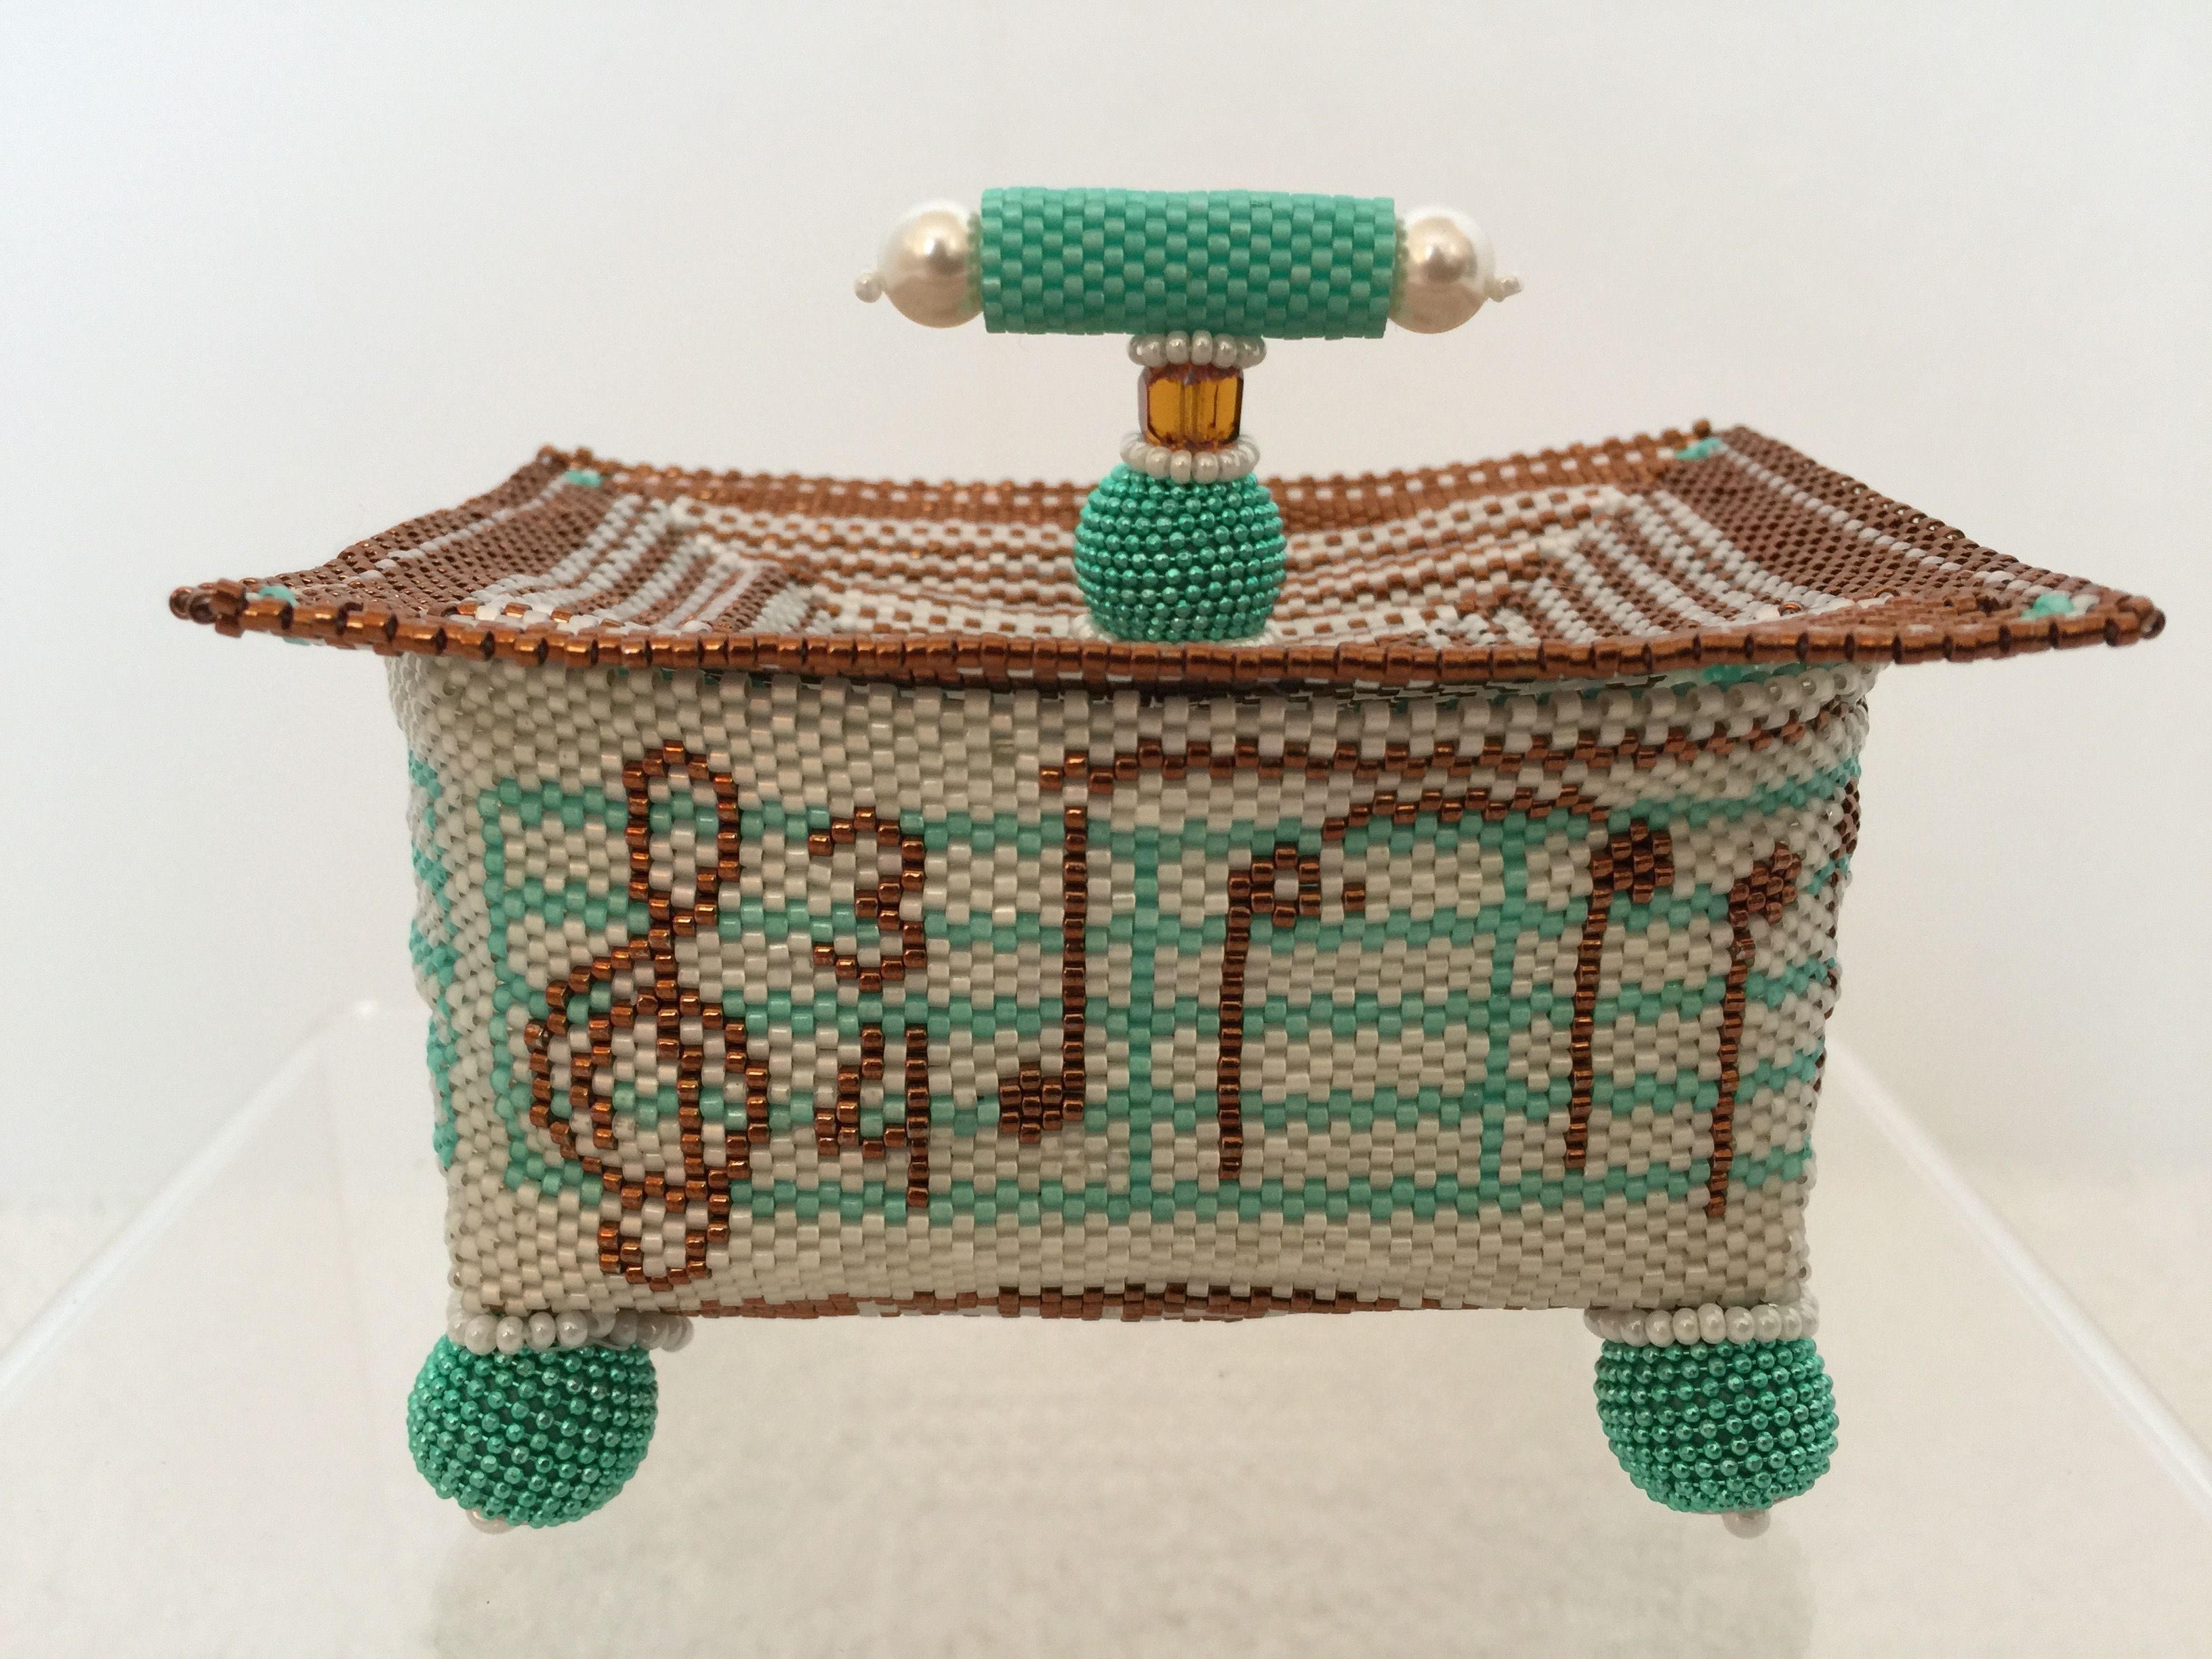 """Music Box"", 2016.  The box is based on a pattern by Julia Pretl.  I used an original color palate, significantly modified the lid, and created an original handle design.  Beaded boxes are entirely made of fishing line (thread) and small seed beads.  The box measures 2.25"" by 3.25"" not including the feet or the handle."